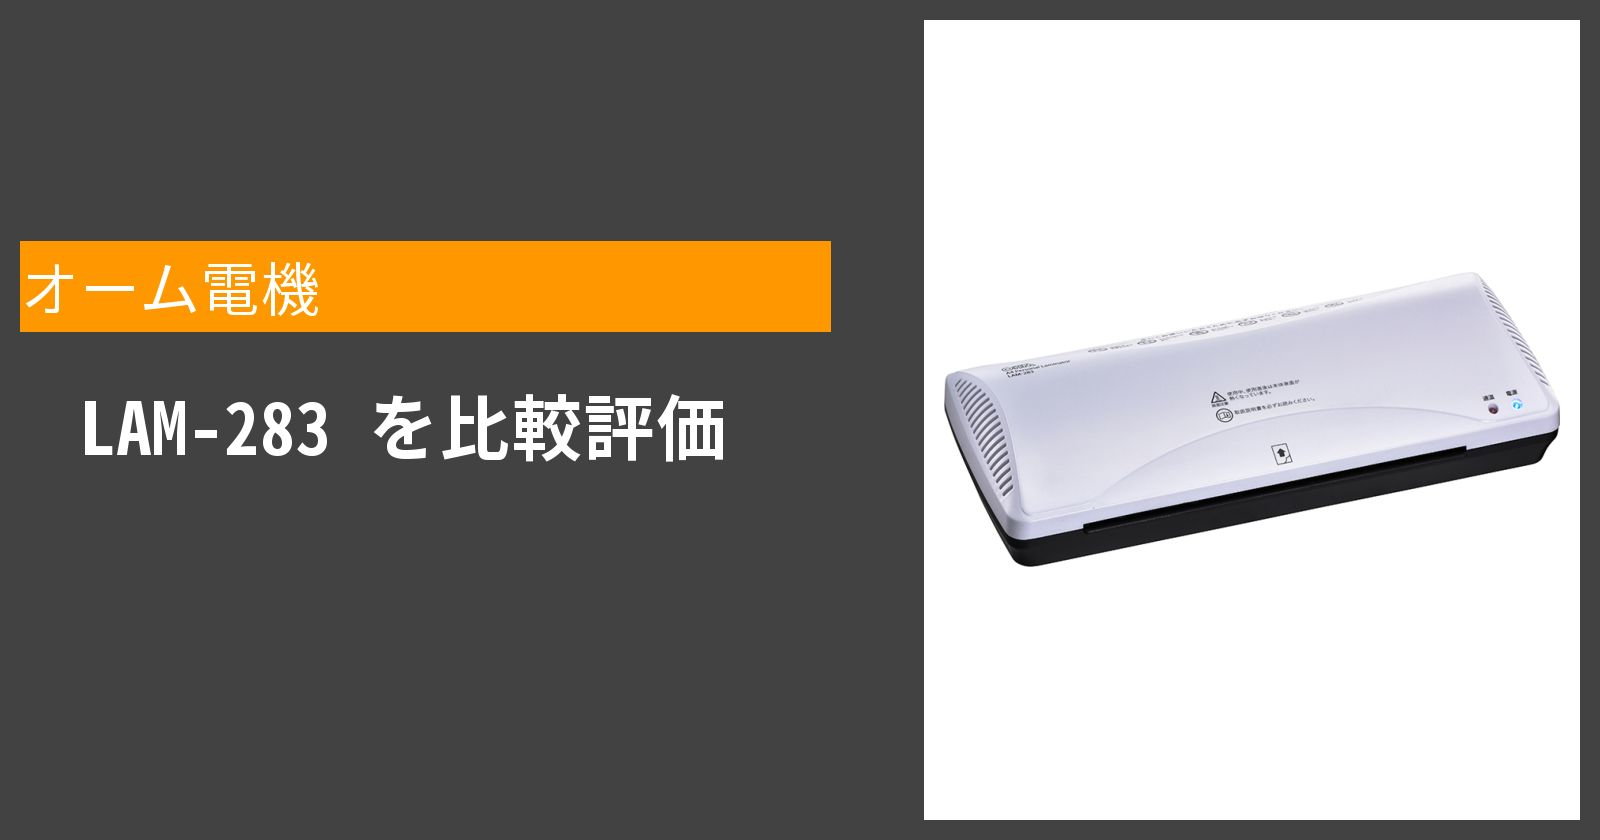 LAM-283を徹底評価